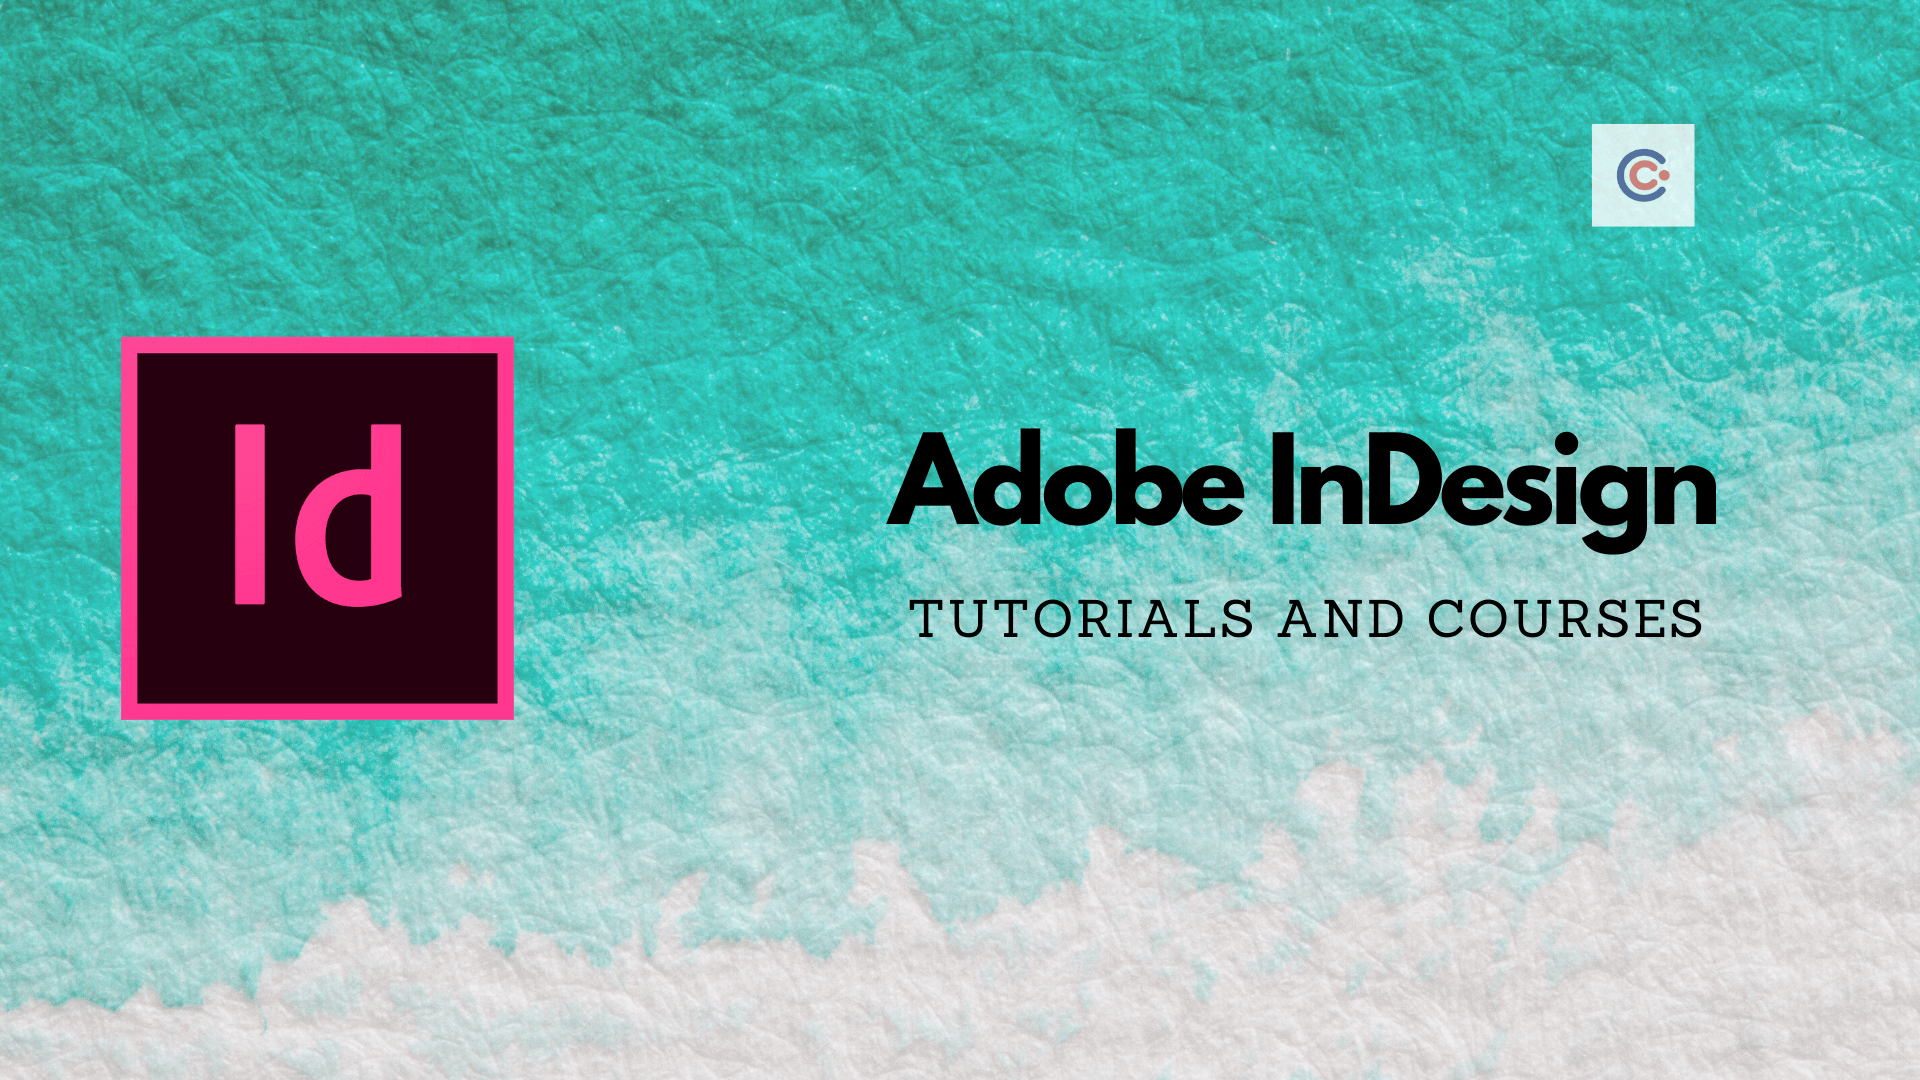 9 Best Adobe InDesign Tutorials and Courses - Learn Adobe InDesign Online